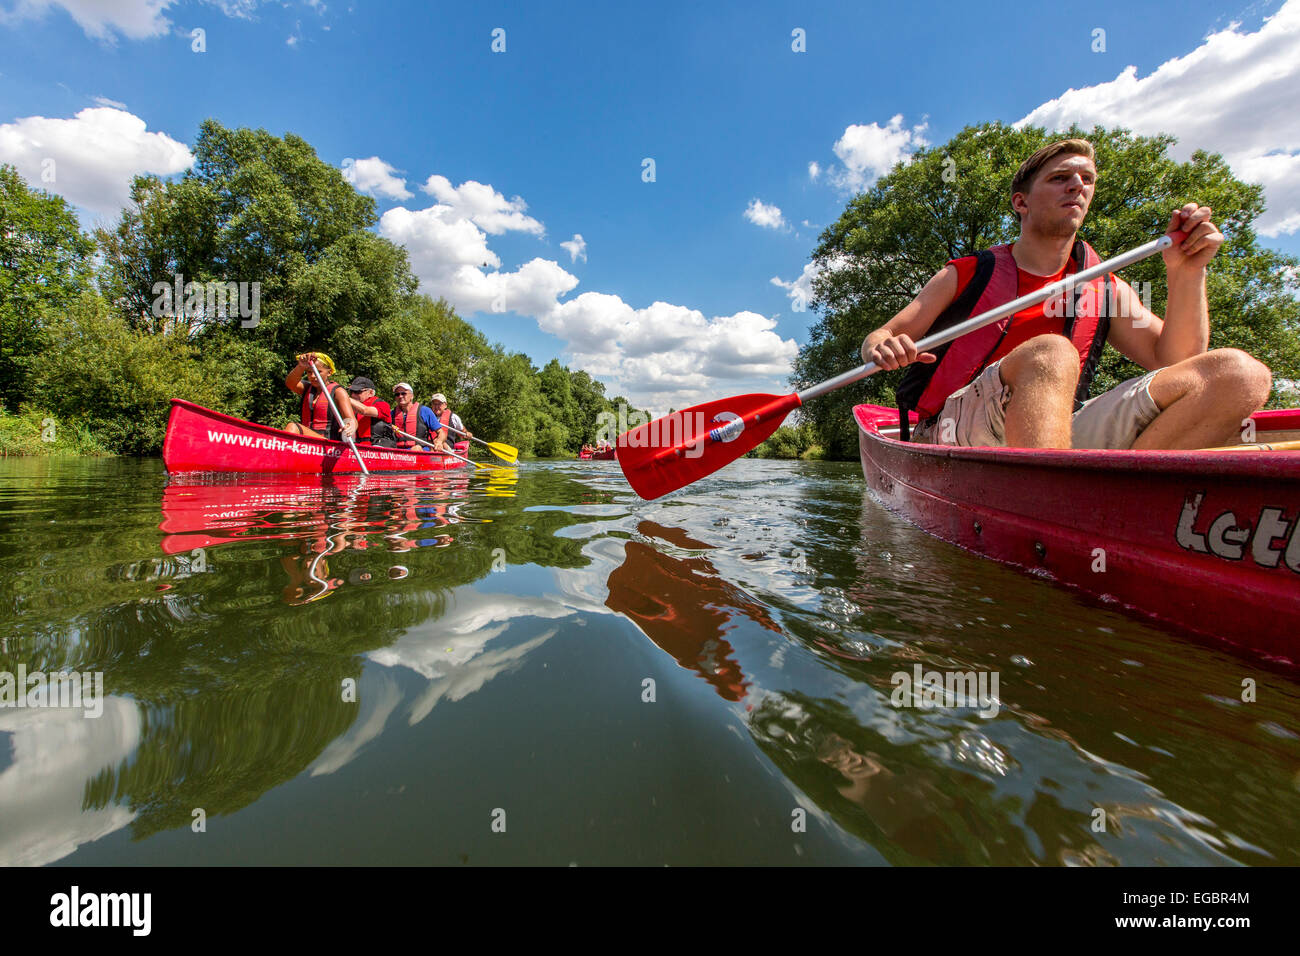 Canoe trip on river Ruhr, tourist attraction, - Stock Image